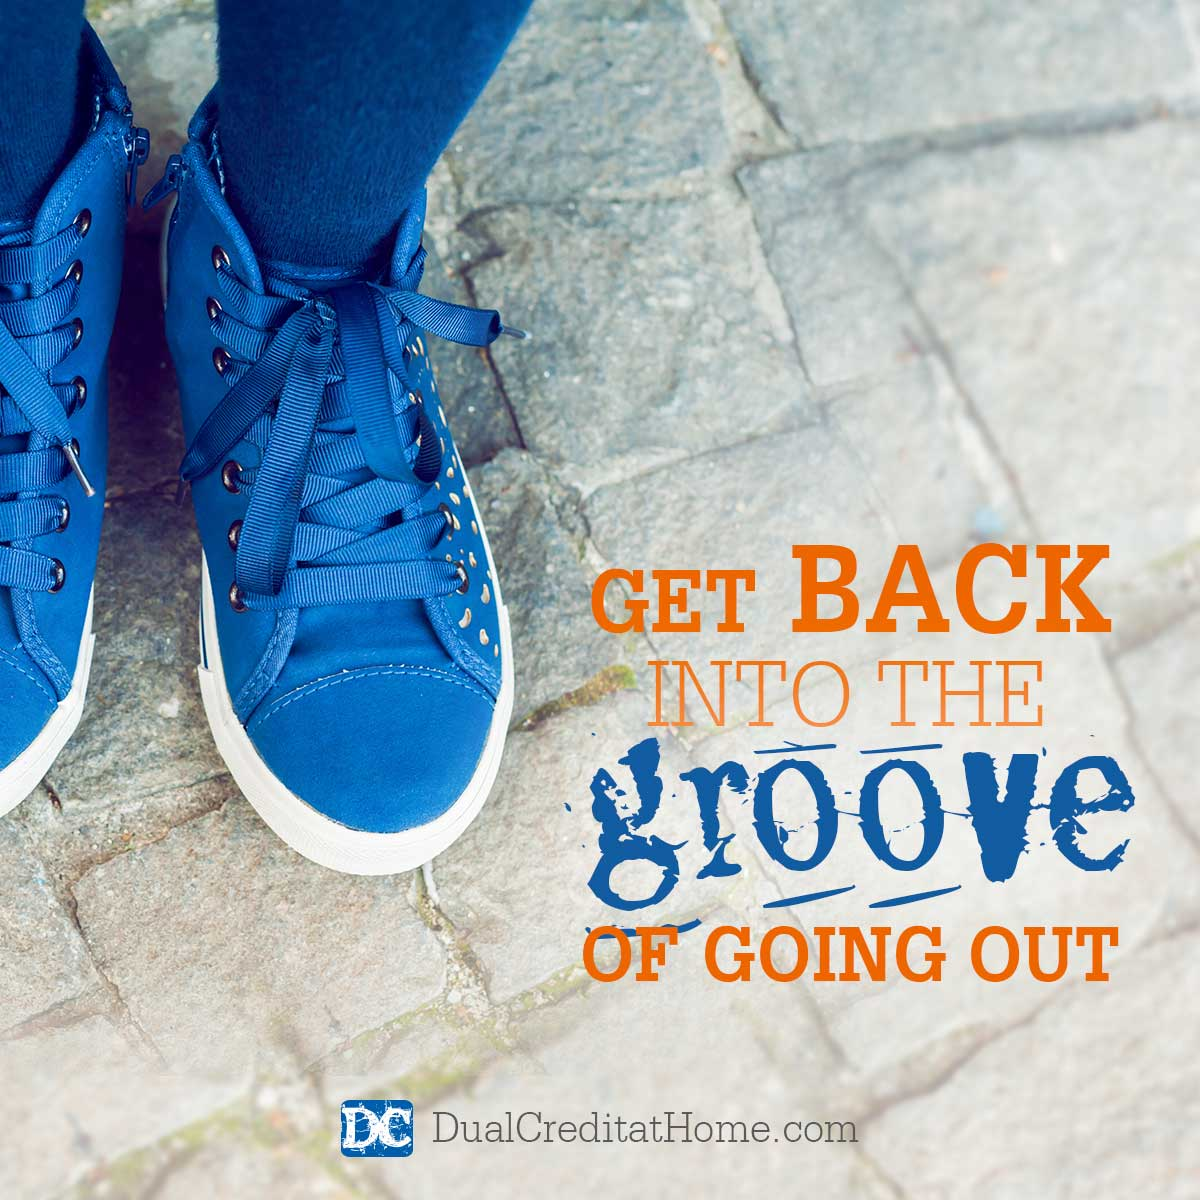 Get Back Into The Groove of Going Out